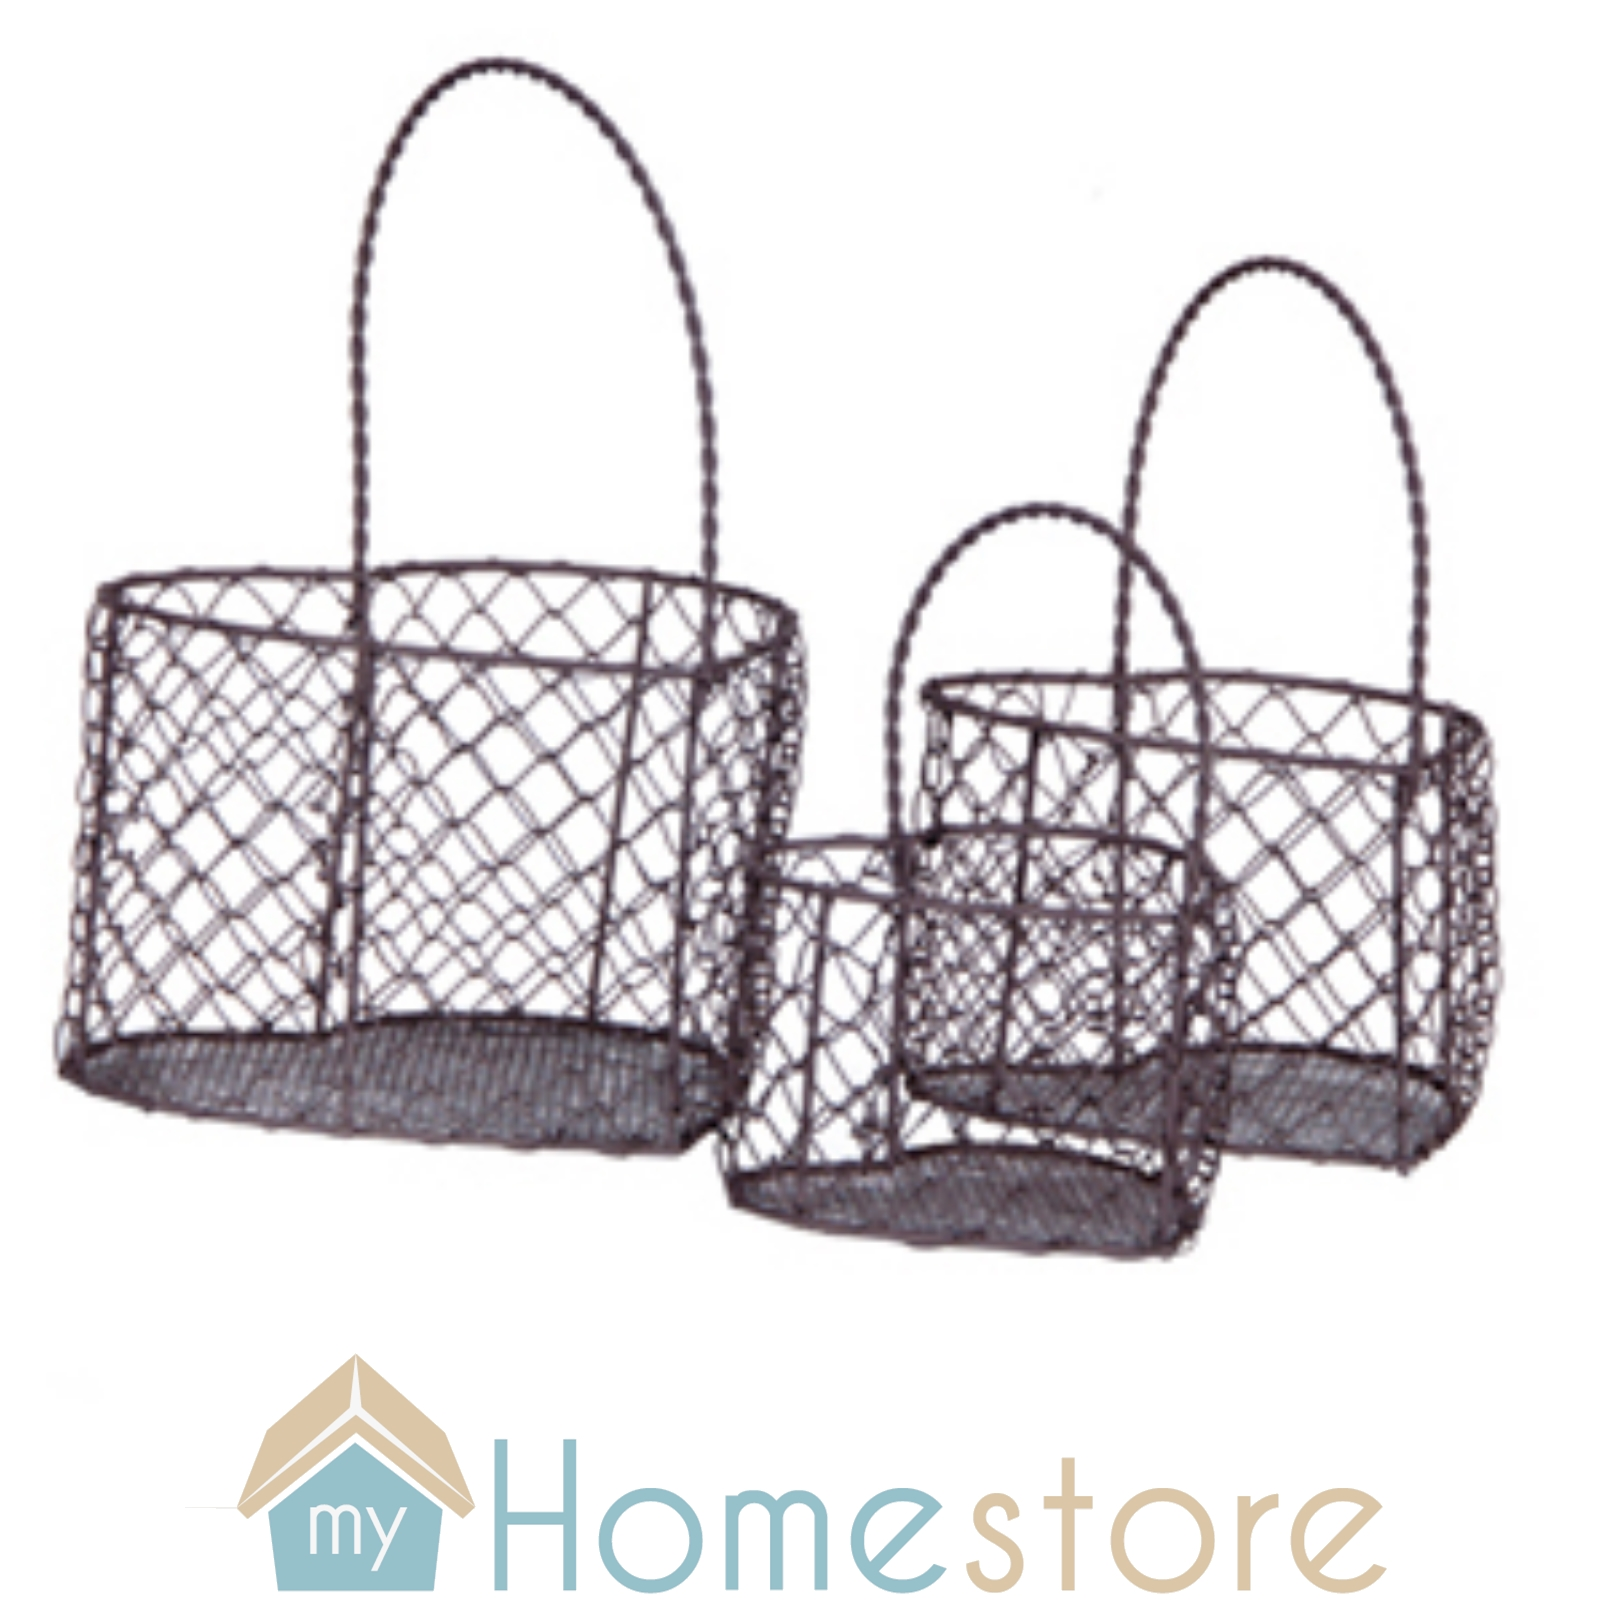 shabby chic set of 3 pretty wire baskets heart shape ebay